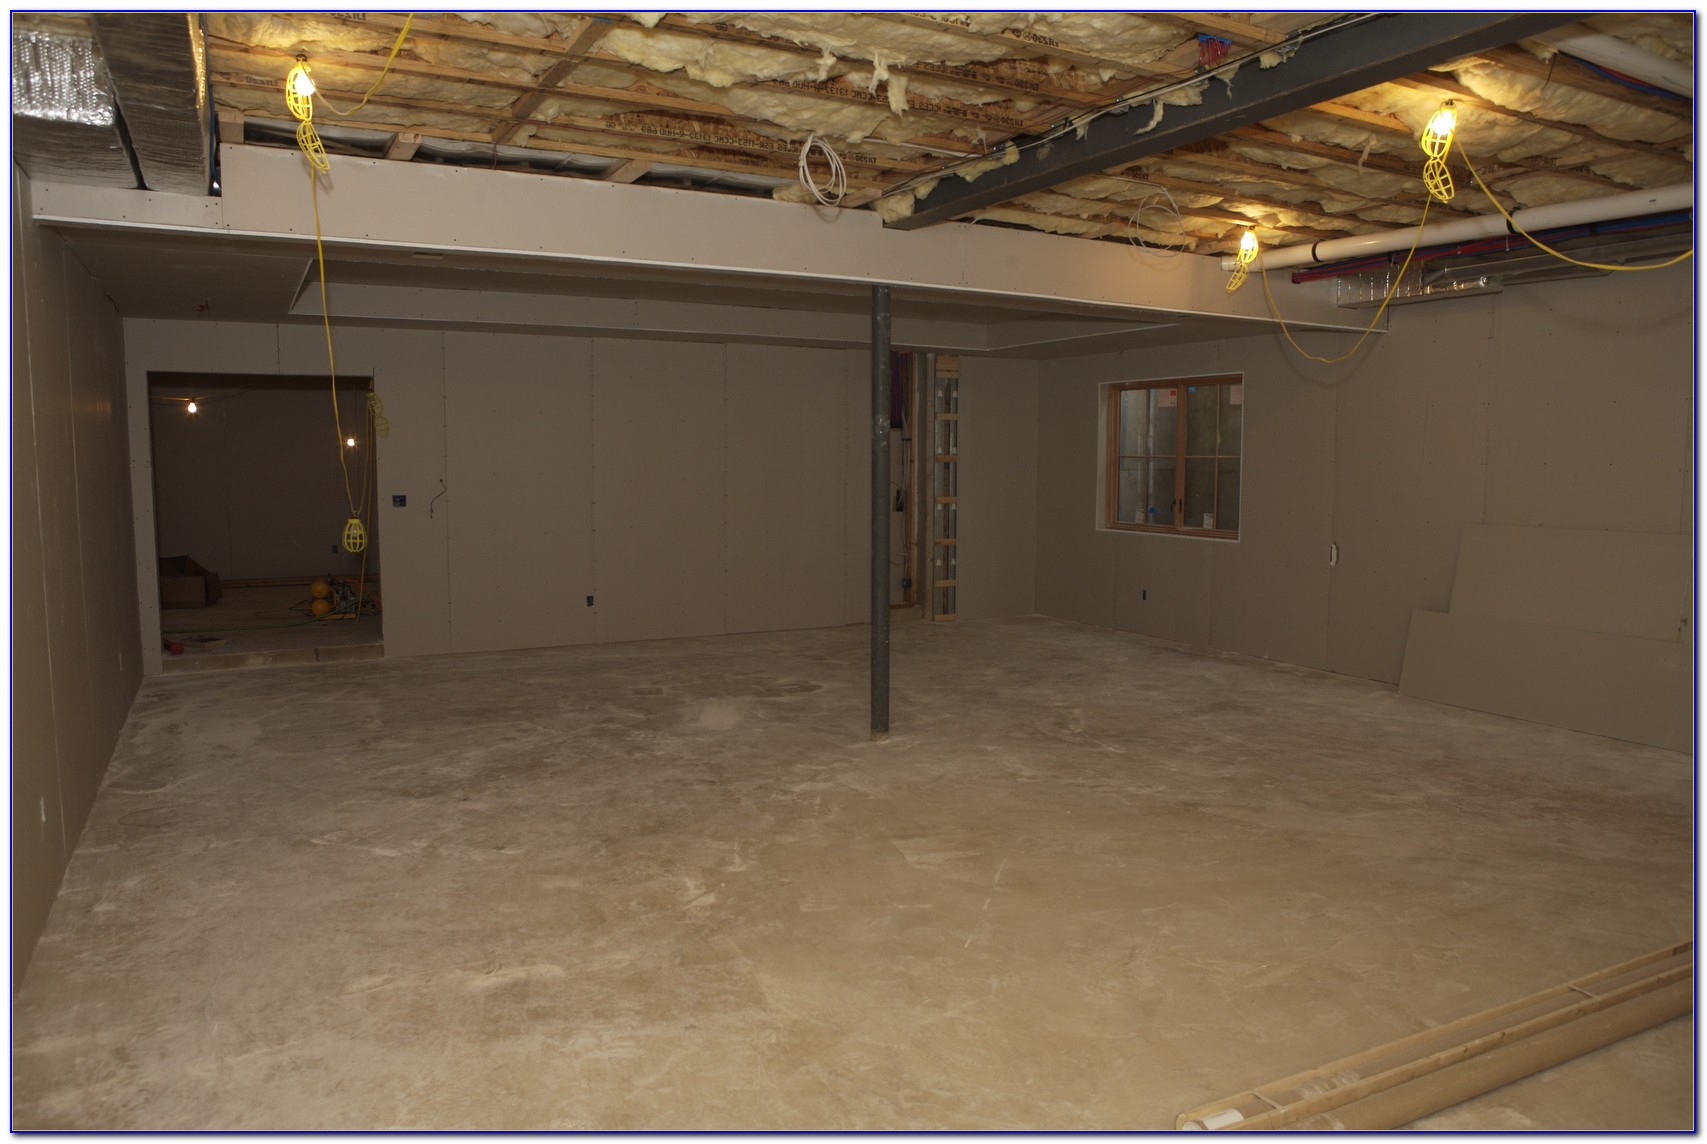 Insulate Crawl Space Ceiling Vapor Barrier